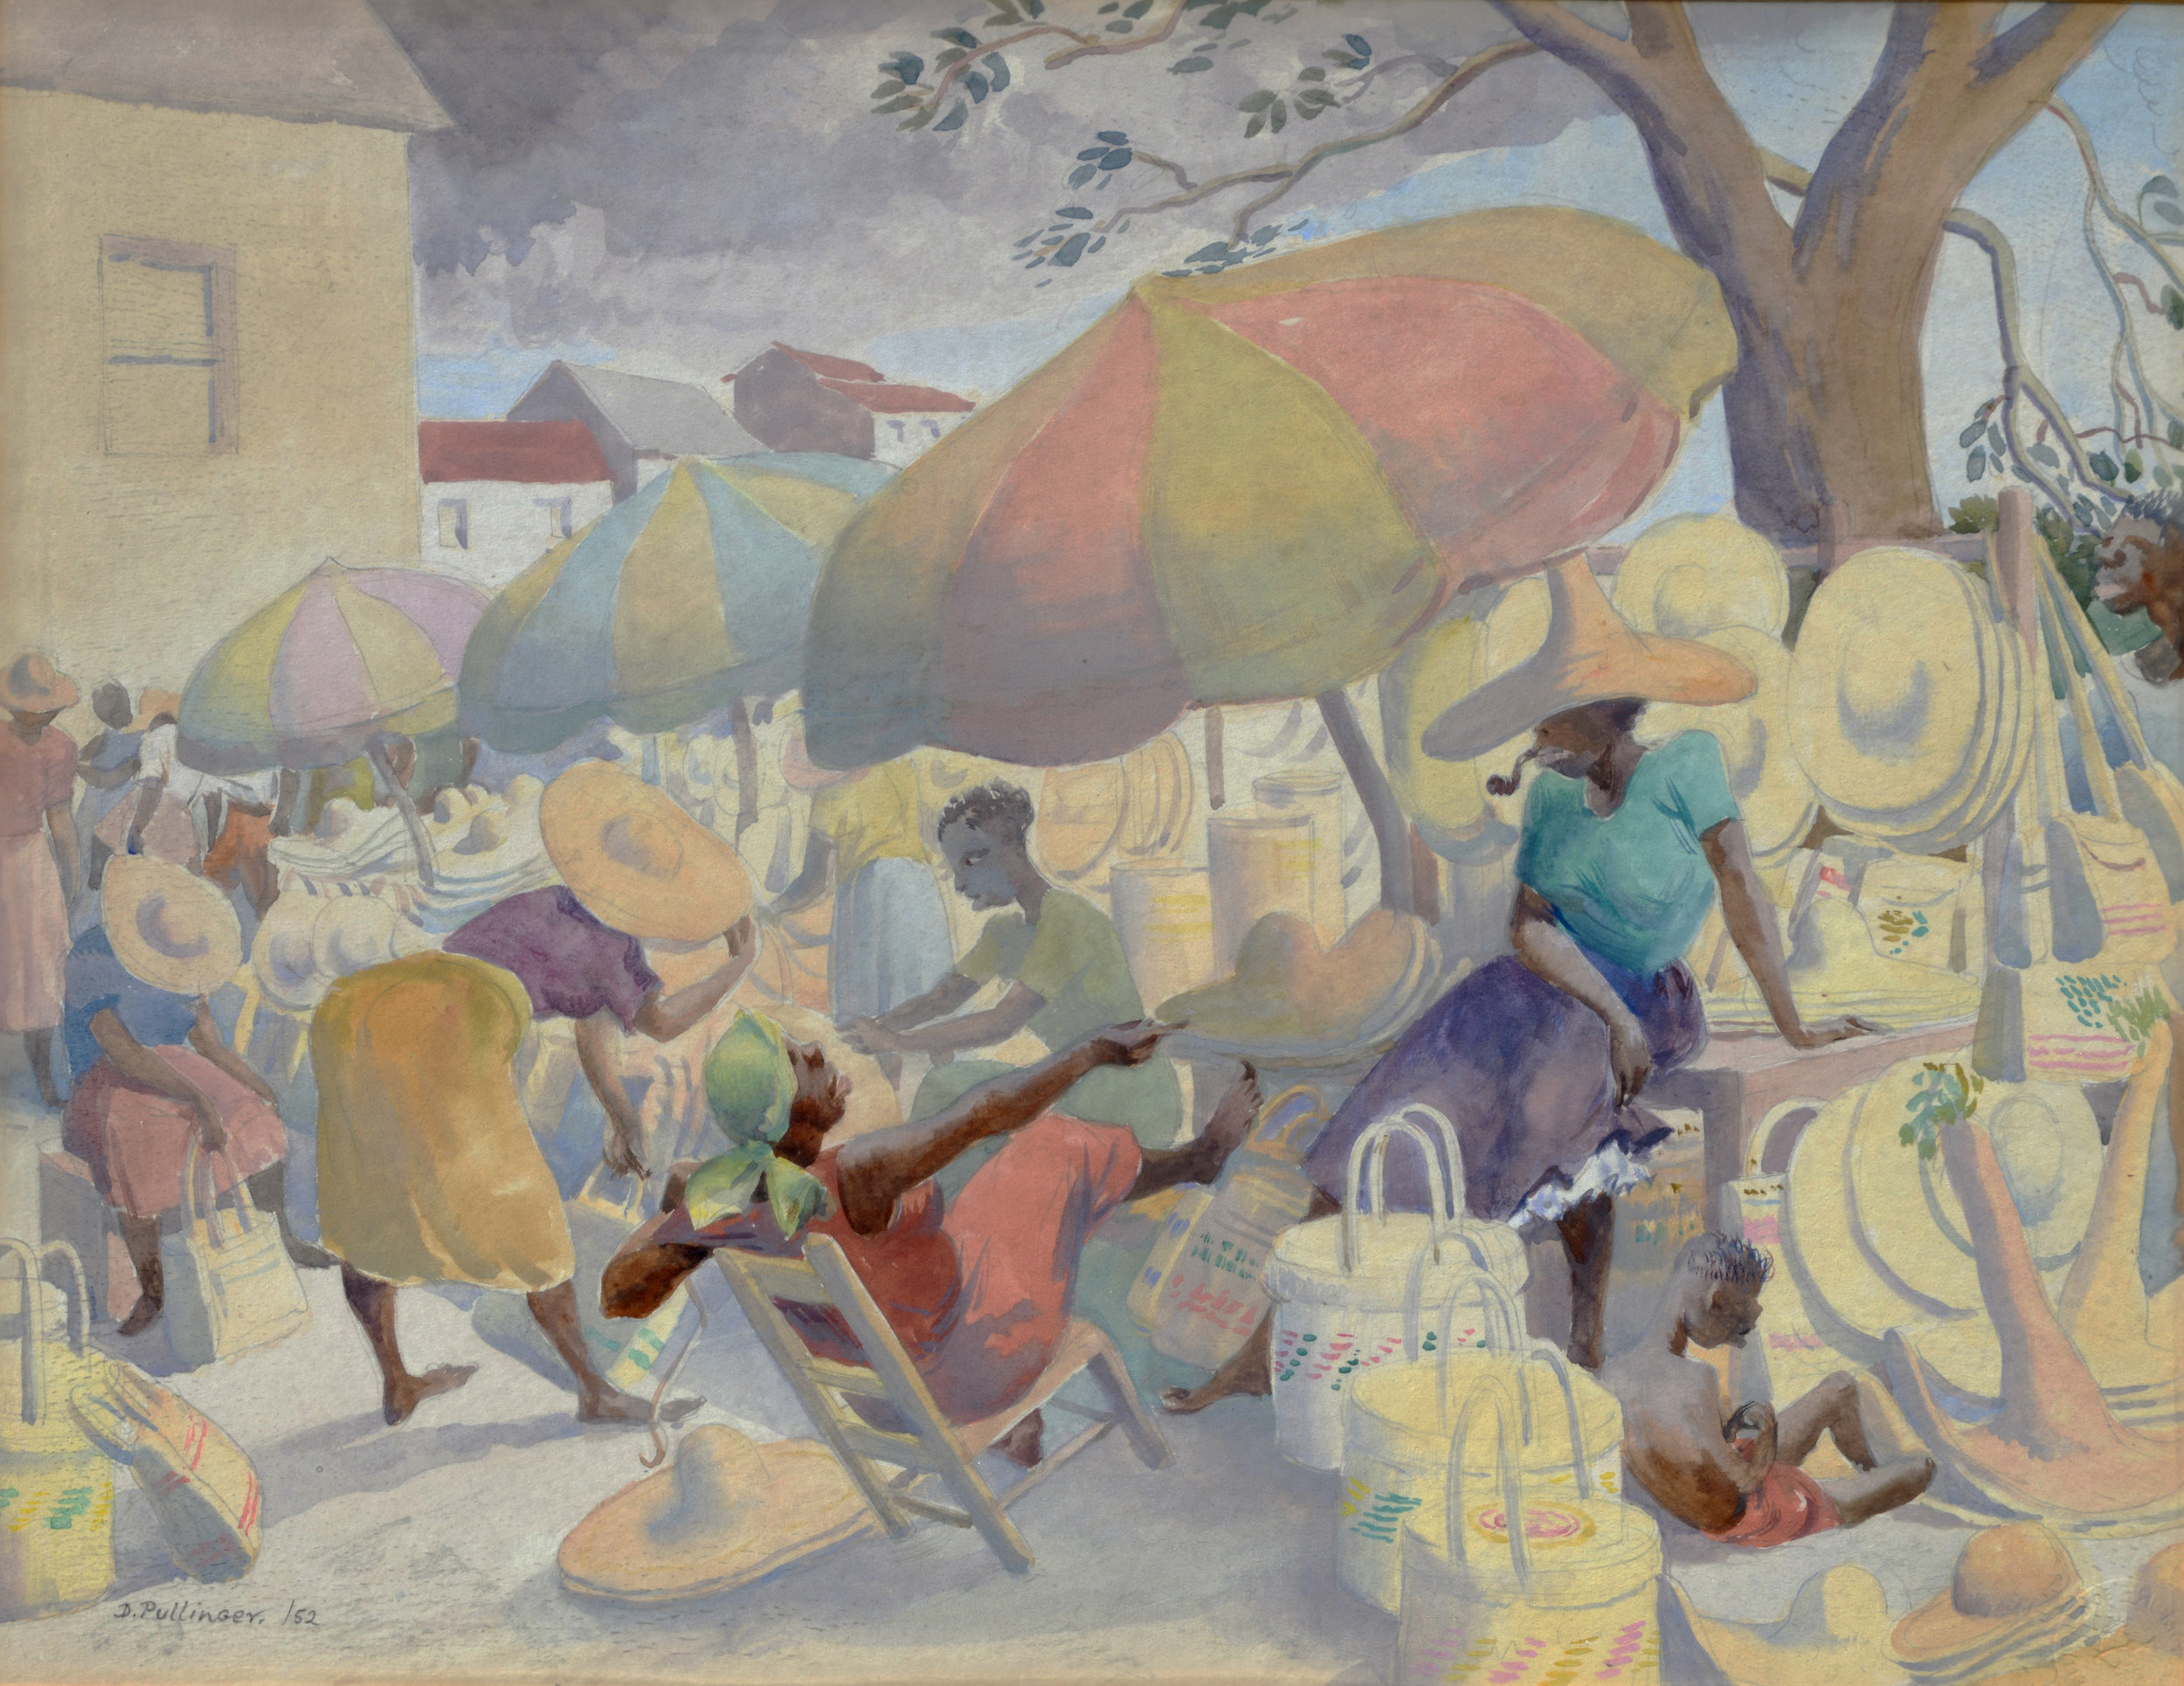 1.     Umbrellas (1952). Diane Pullinger, watercolour on paper, 10 ½  13 1/2. Image courtesy of the Dawn Davies Collection.